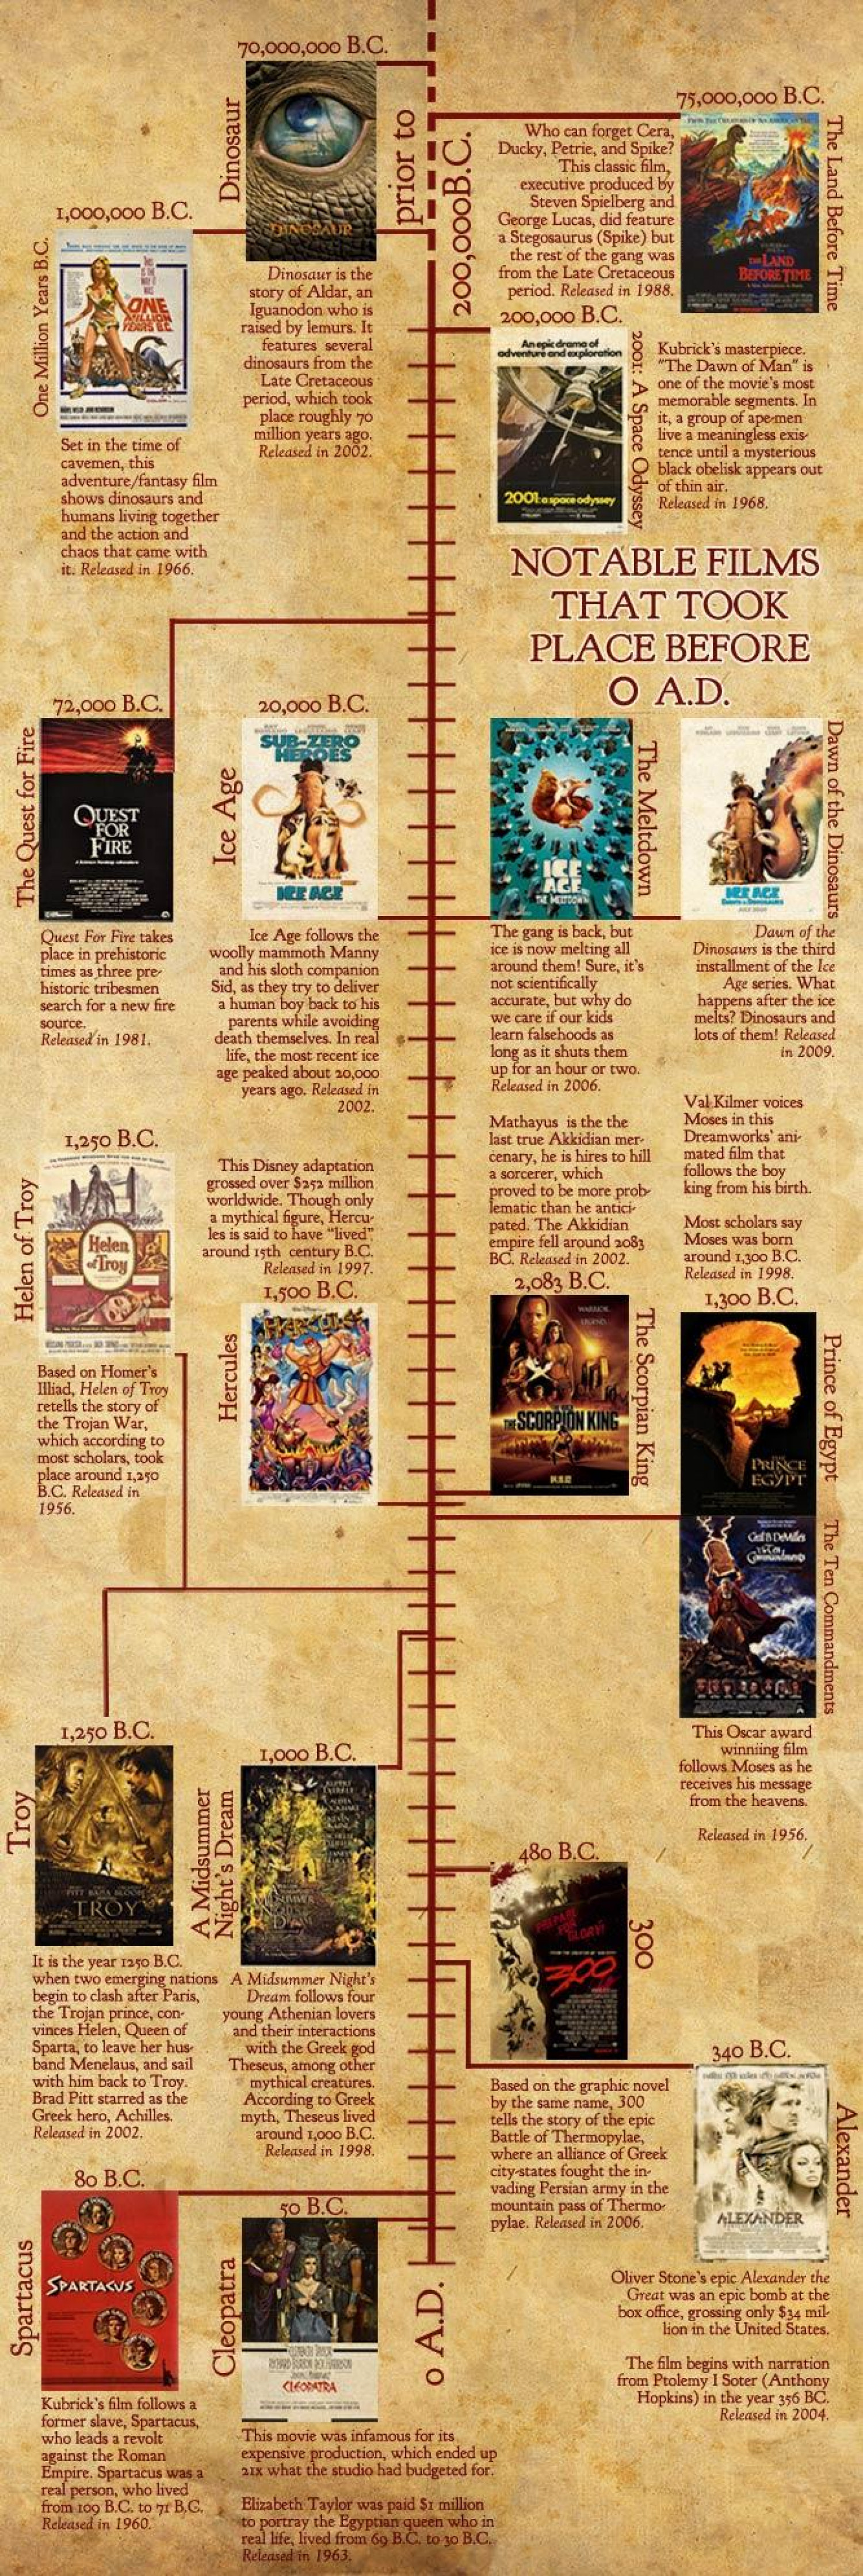 Notable Films That Took Place Before 0 AD Infographic